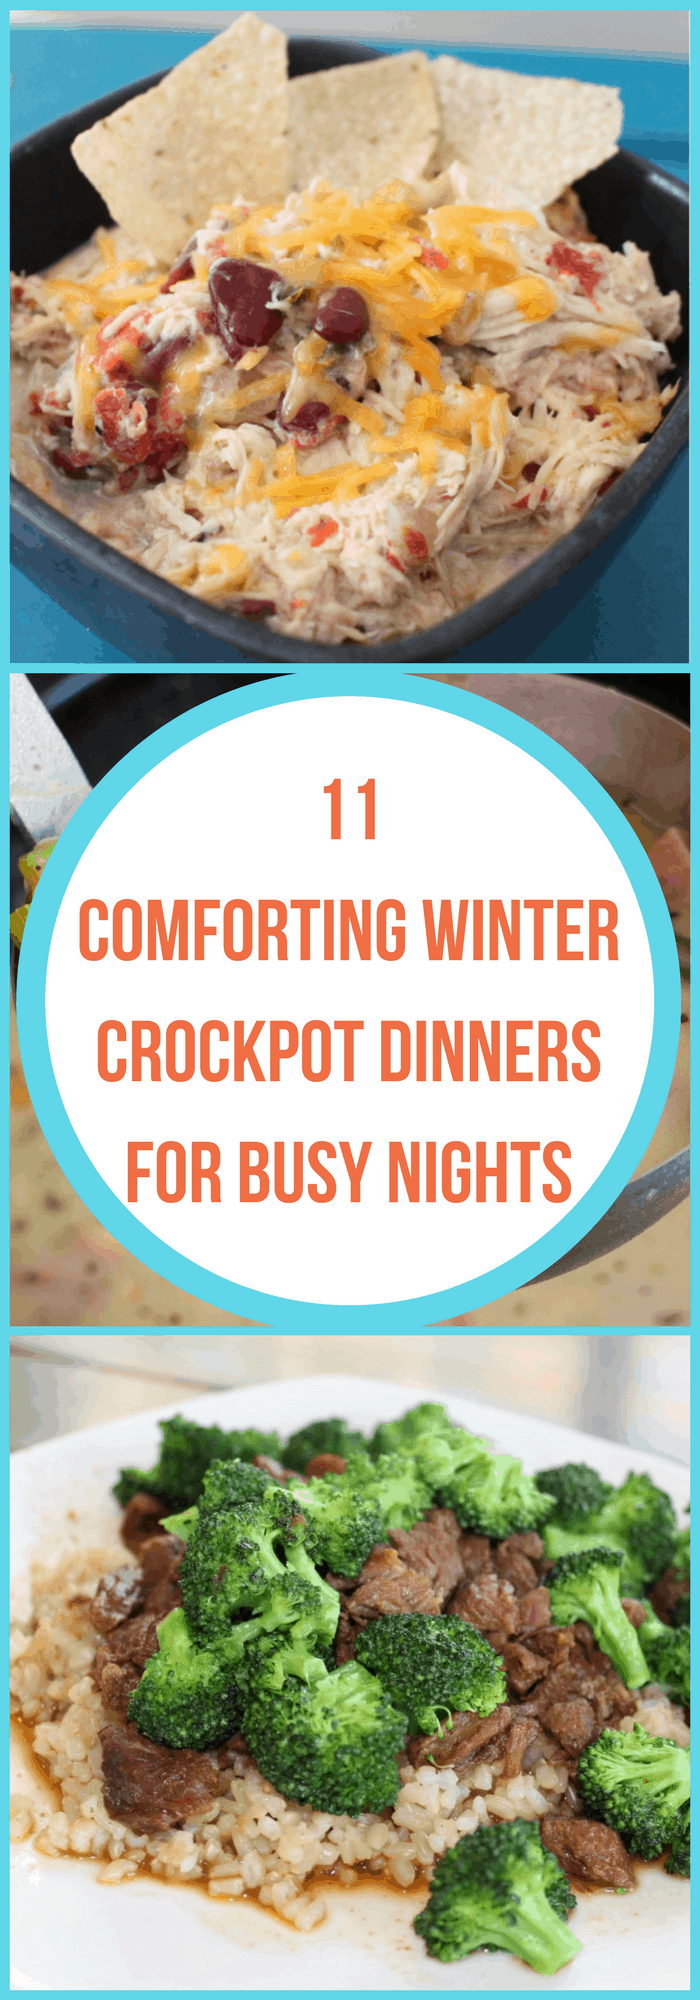 Cooking--Comforting Winter Crockpot Dinners for Busy Nights--The Organized Mom